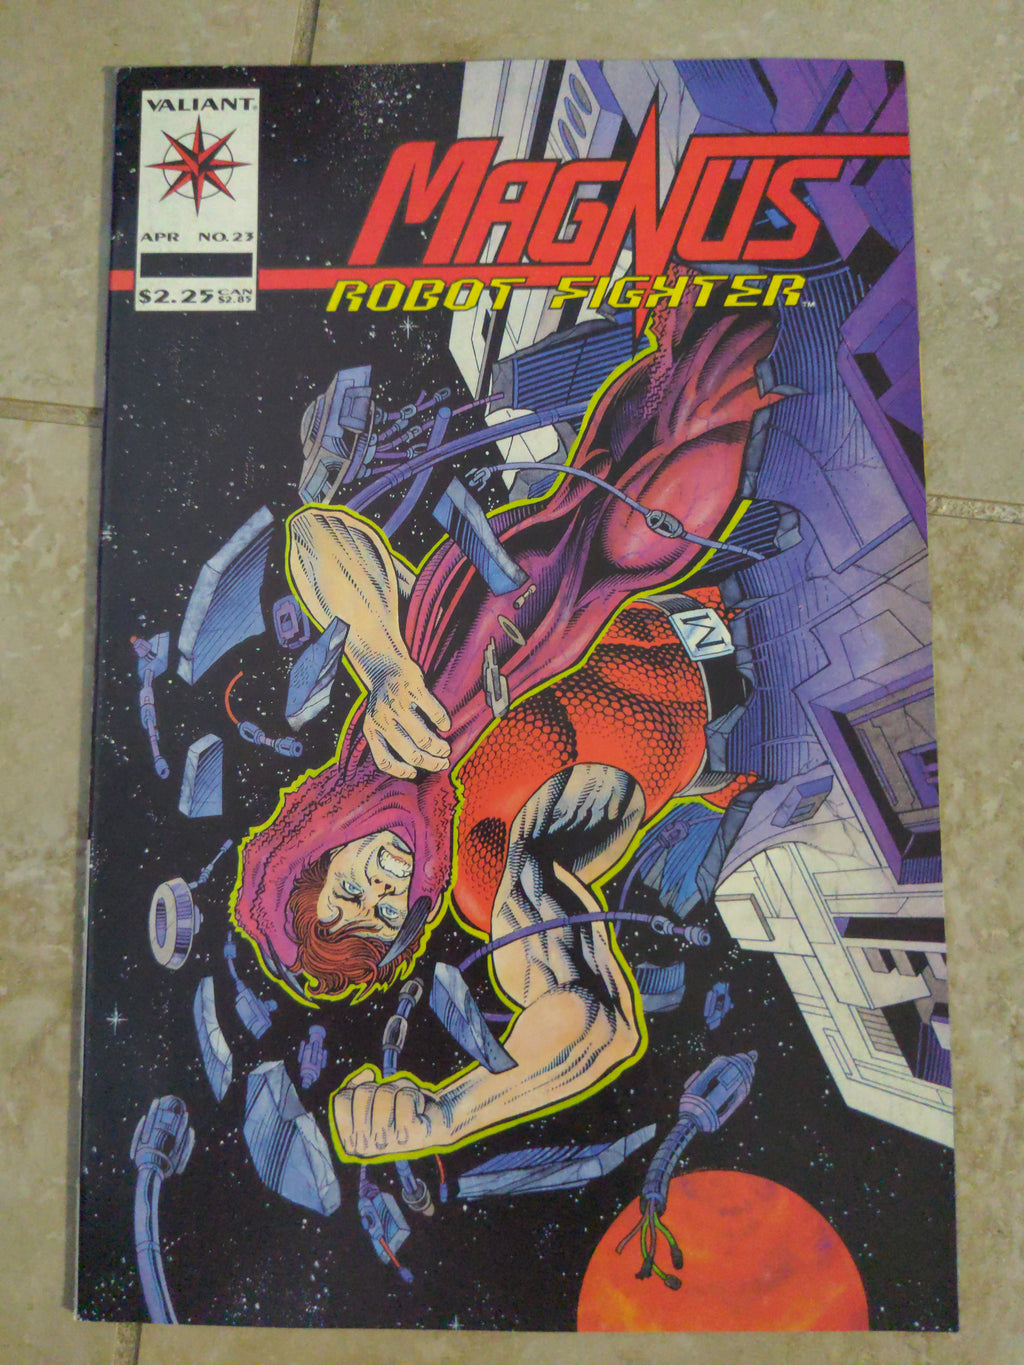 Magnus Robot Fighter #23 vol 2 (1993) Valiant Comics